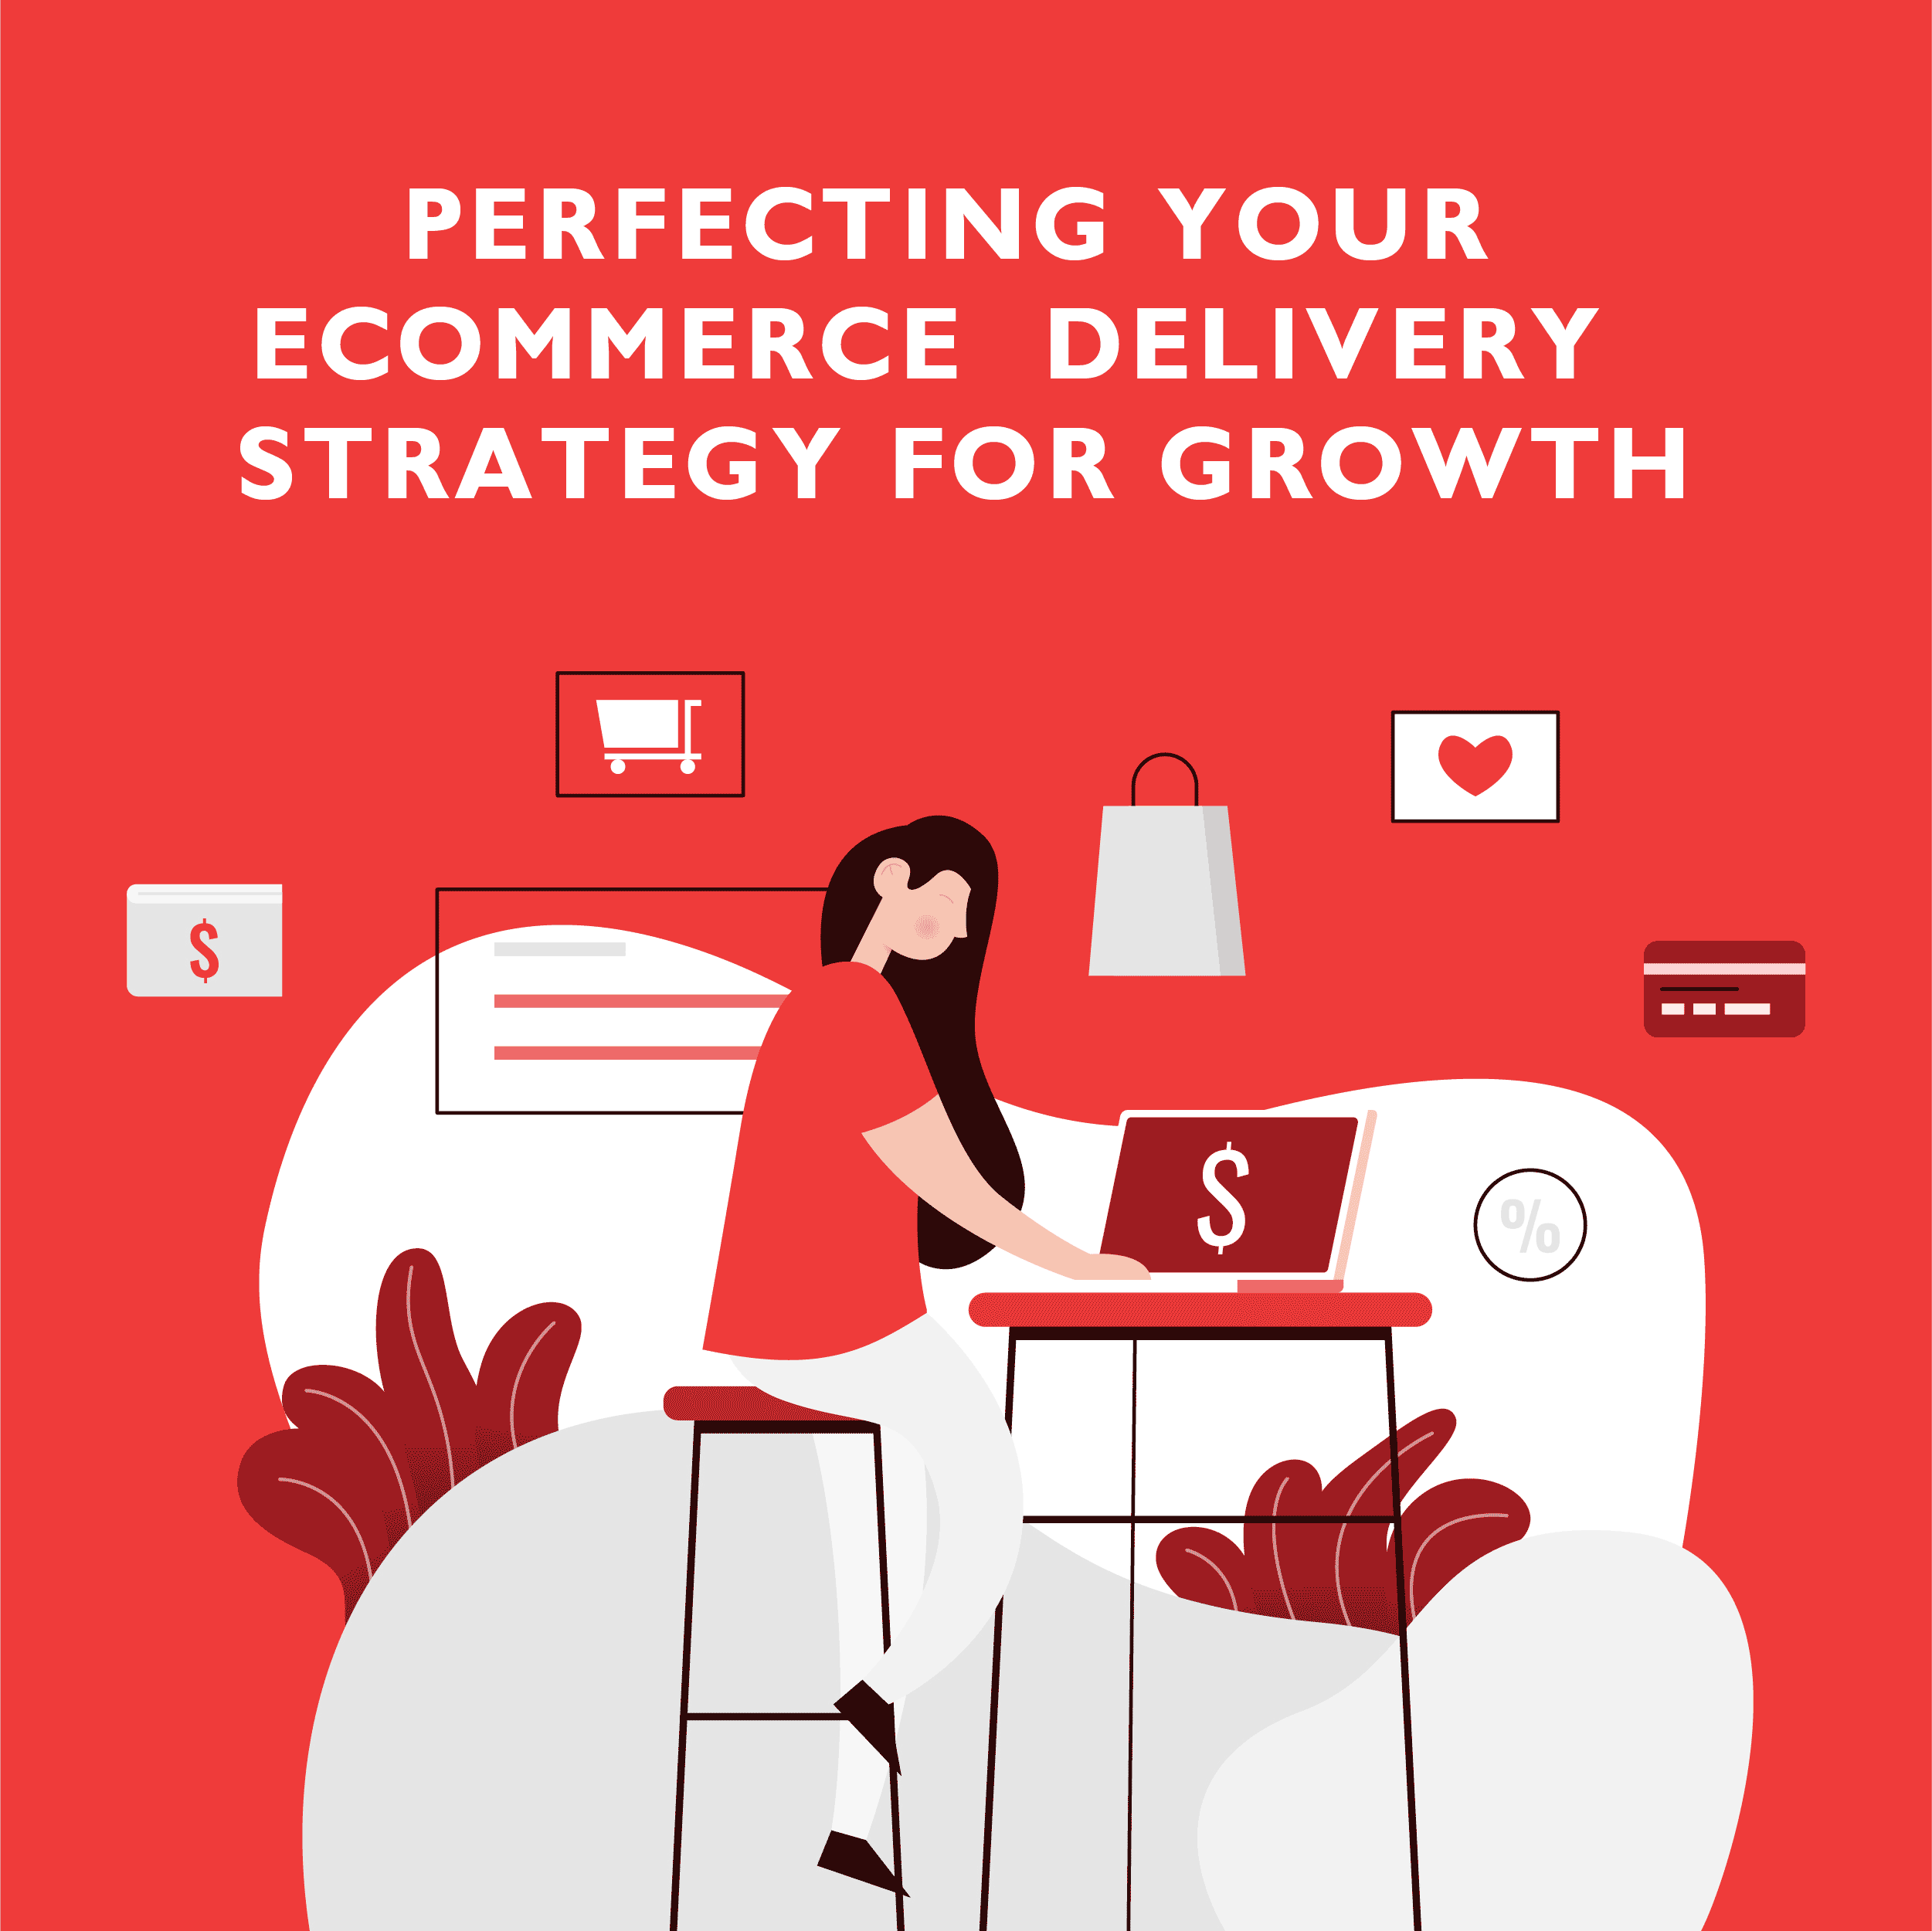 Perfecting your-ecommerce delivery strategy